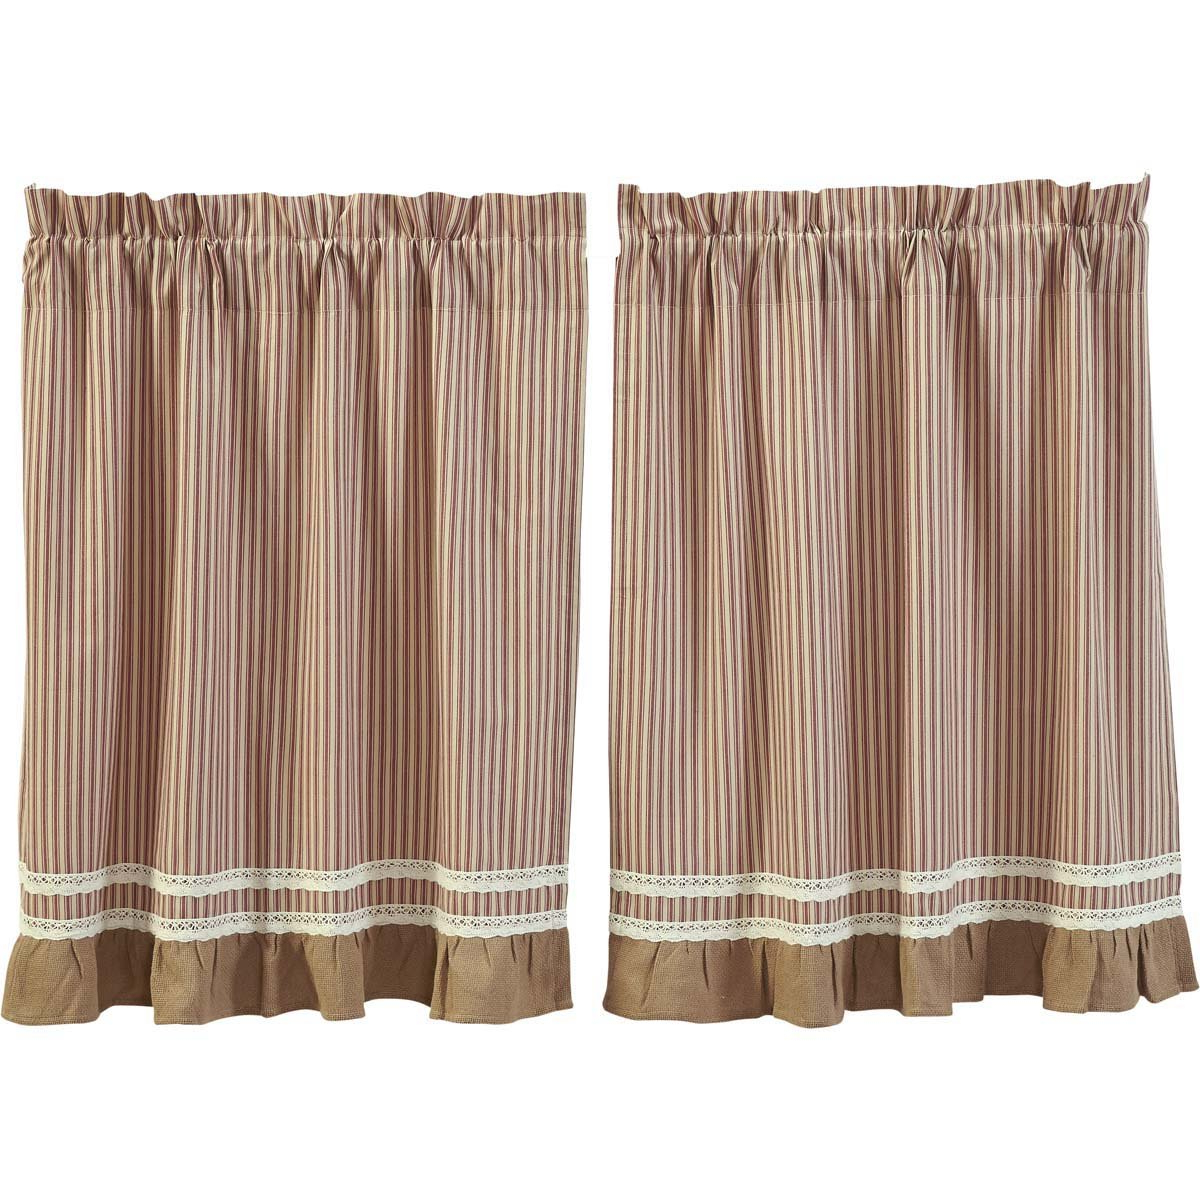 Well Known Rod Pocket Cotton Striped Lace Cotton Burlap Kitchen Curtains Inside Vhc Brands Classic Country Farmhouse Kitchen Window Curtains Kendra Stripe White Tier Pair, L36 X W36, Red (View 6 of 20)